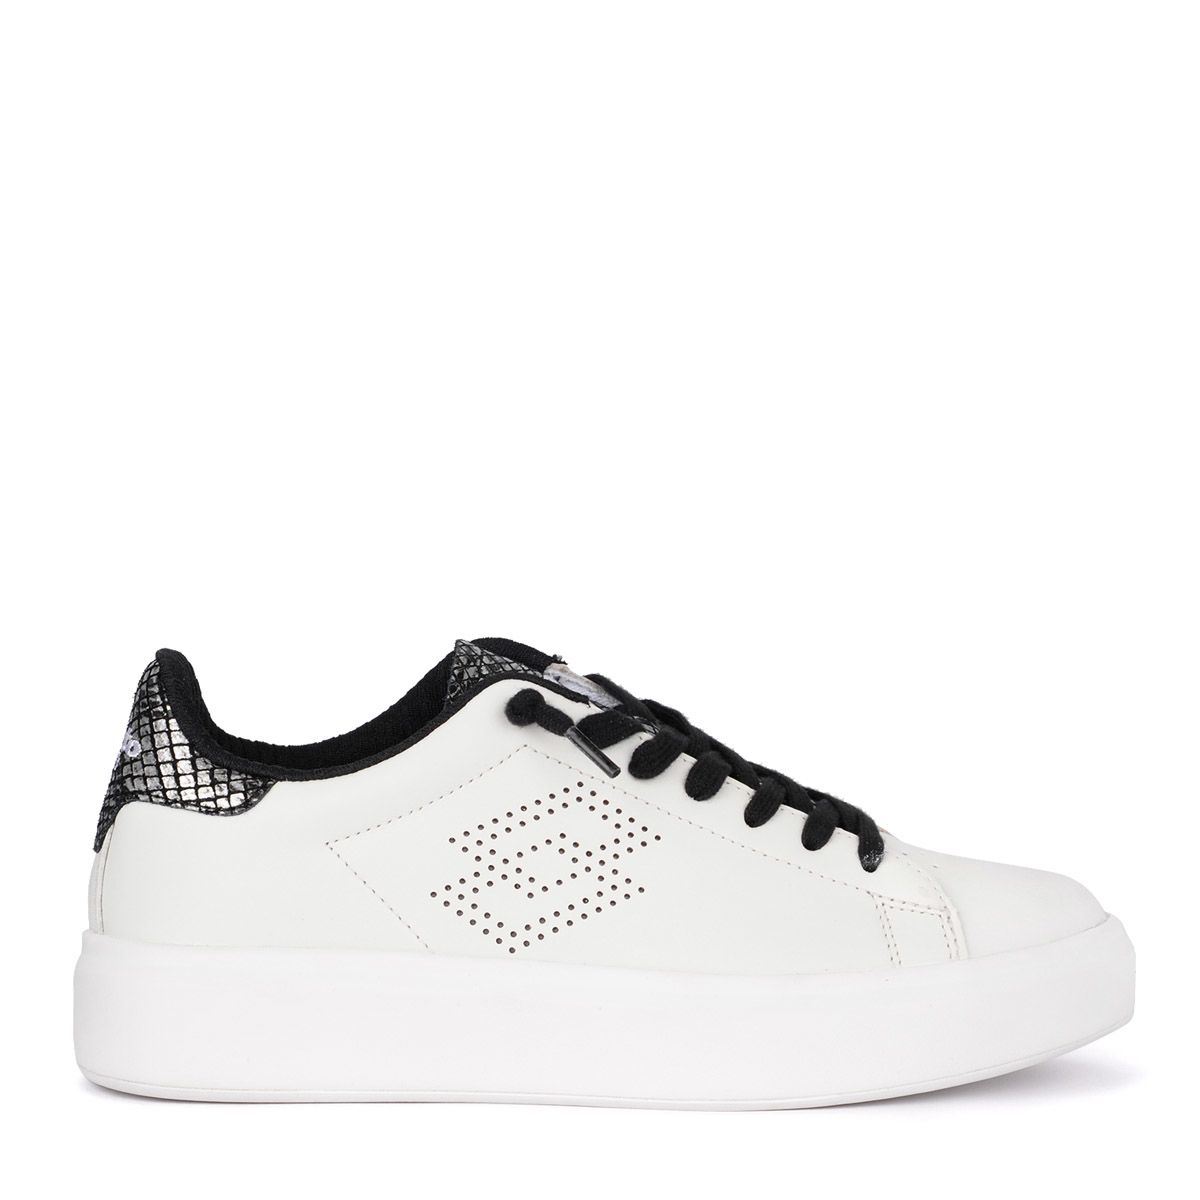 LOTTO LEGGENDA Lotto Impressions White Leather Sneaker in Bianco